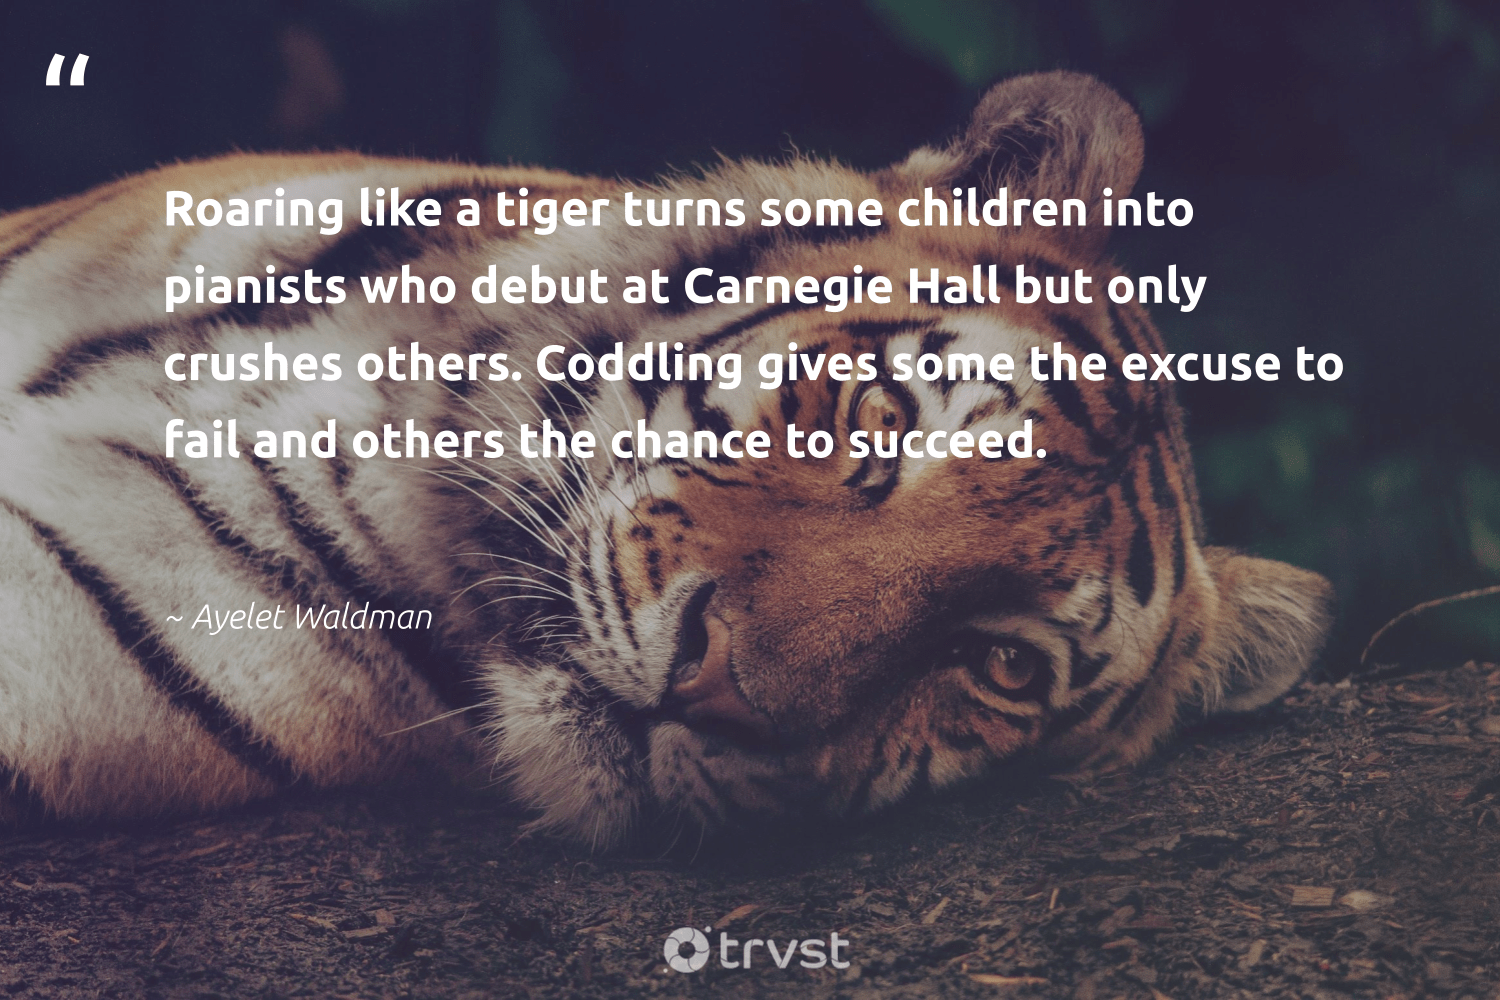 """Roaring like a tiger turns some children into pianists who debut at Carnegie Hall but only crushes others. Coddling gives some the excuse to fail and others the chance to succeed.""  - Ayelet Waldman #trvst #quotes #tiger #children #biodiversity #dogood #wildlifeprotection #bethechange #ourplanetdaily #gogreen #tigers #beinspired"